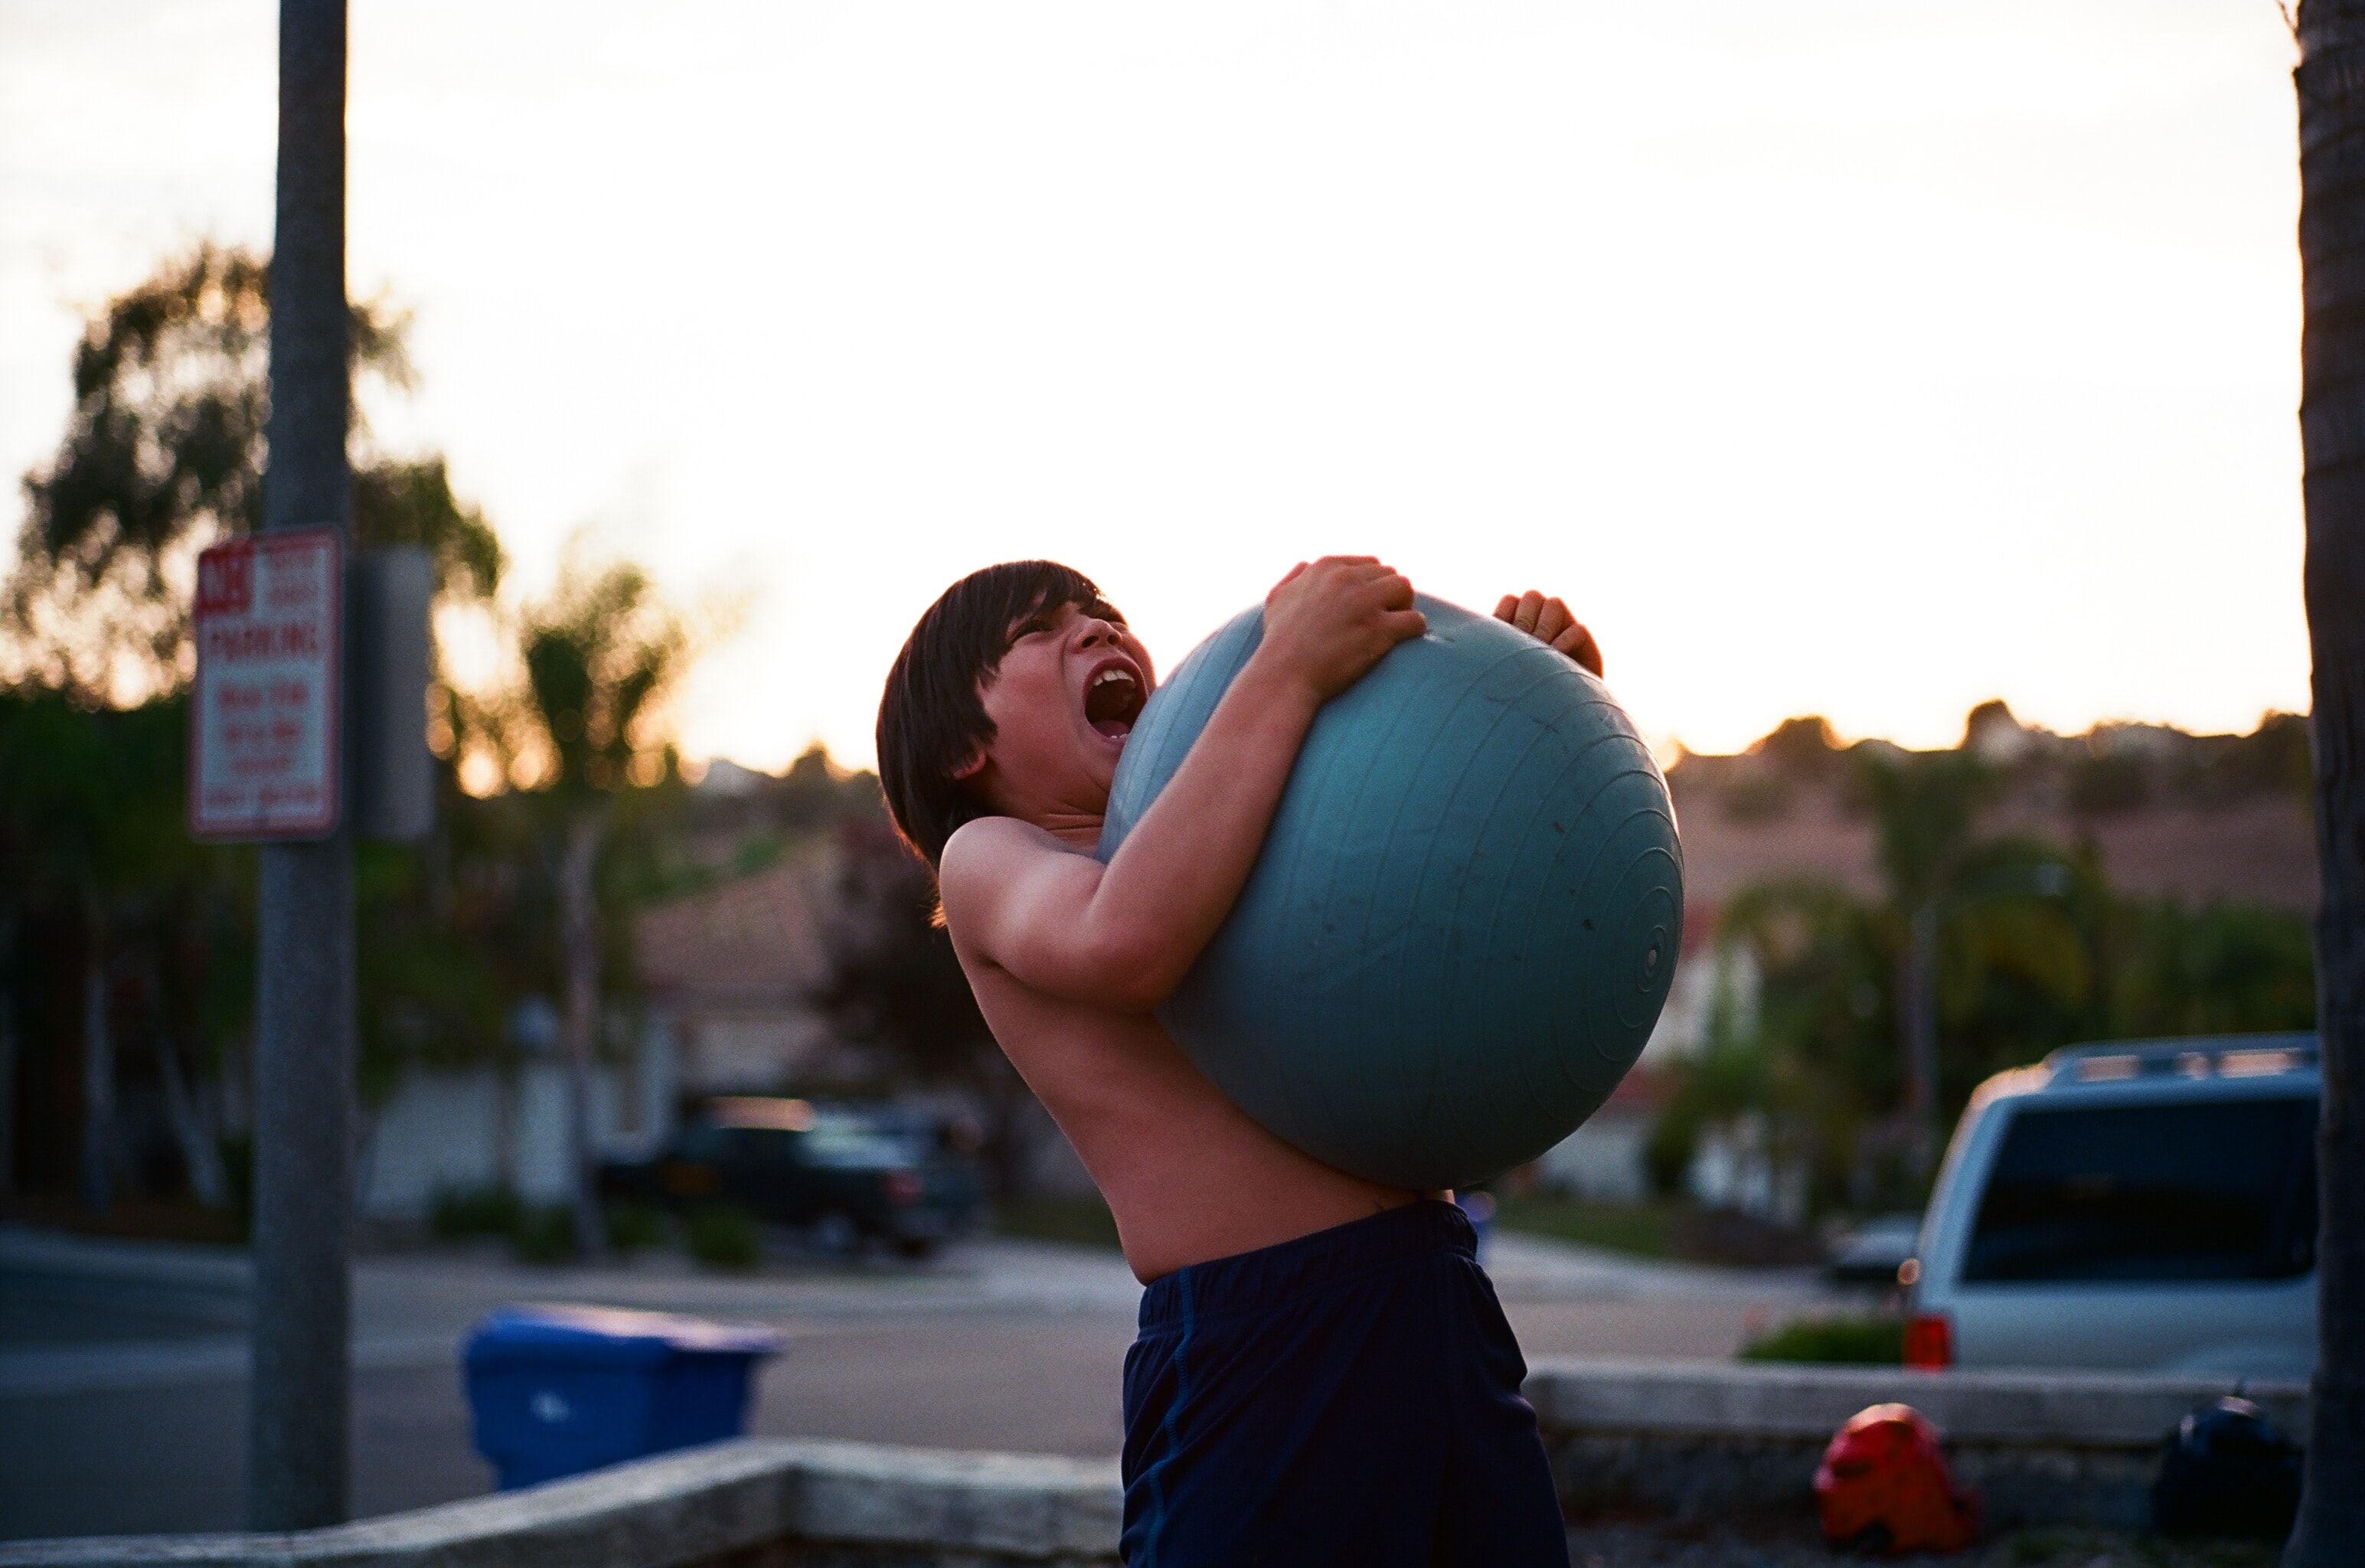 Shirtless boy squeezing and playing with large inflatable ball near parked car in Oceanside